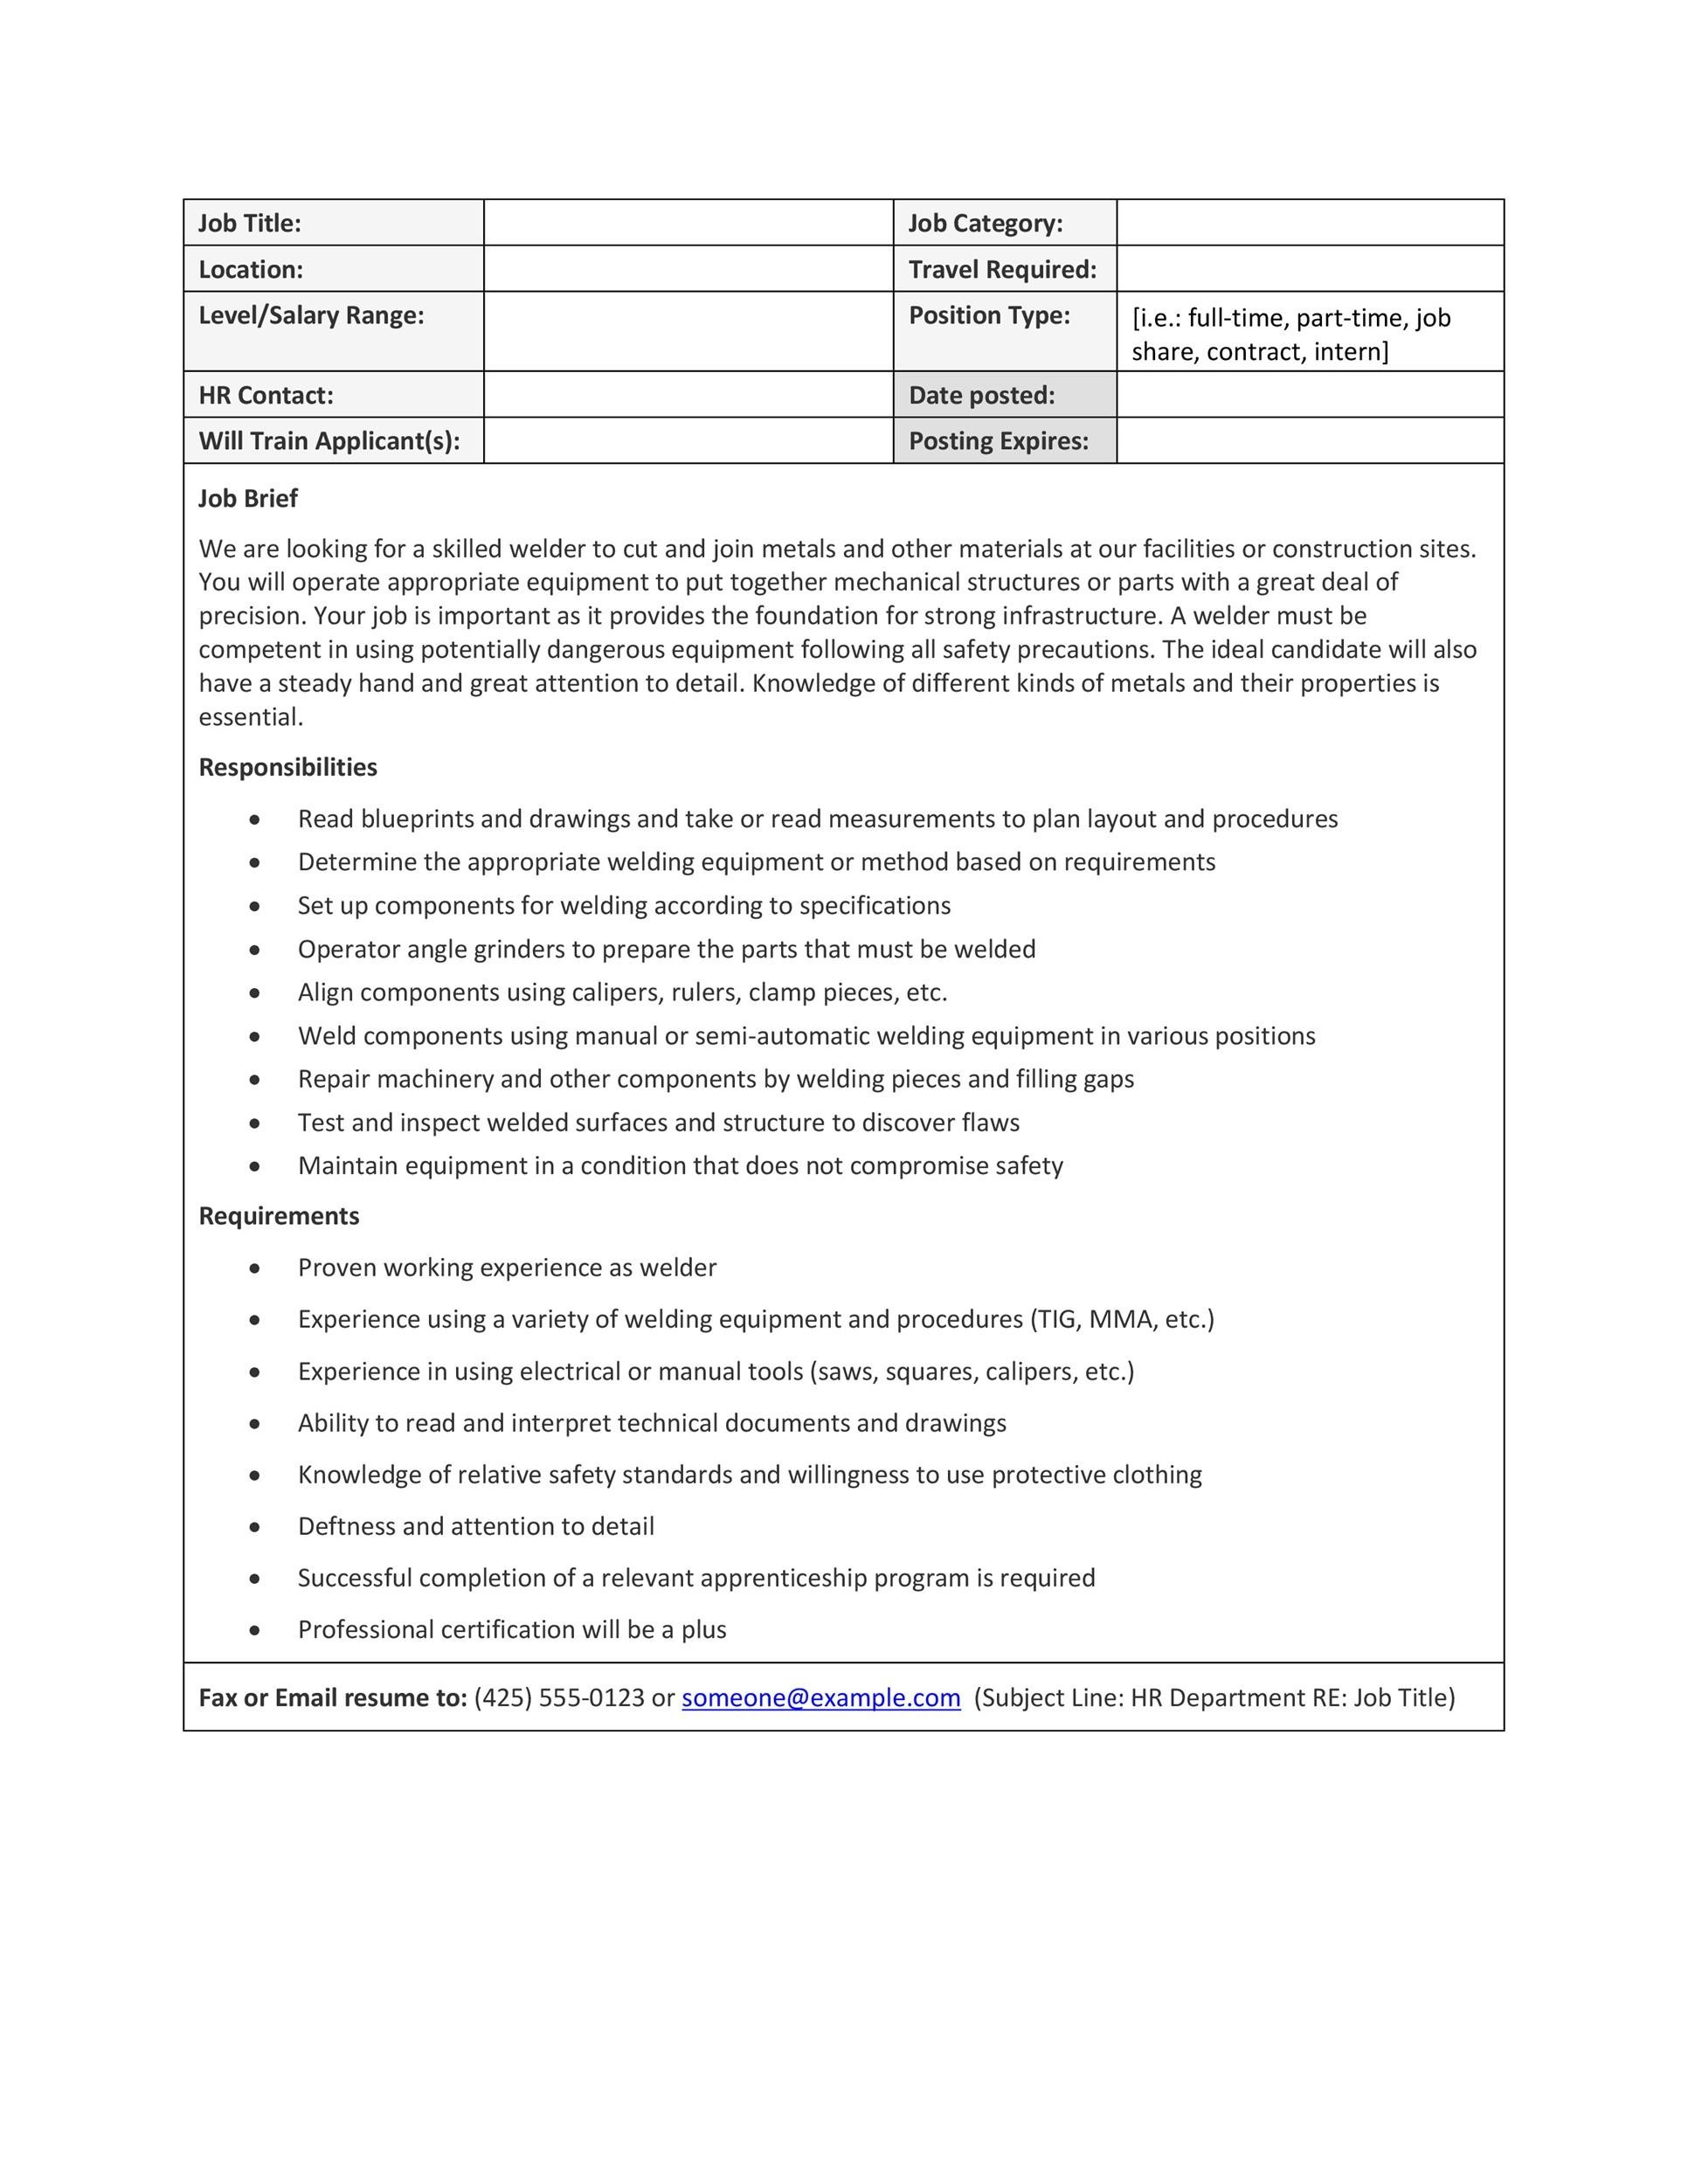 Job Description Template 23